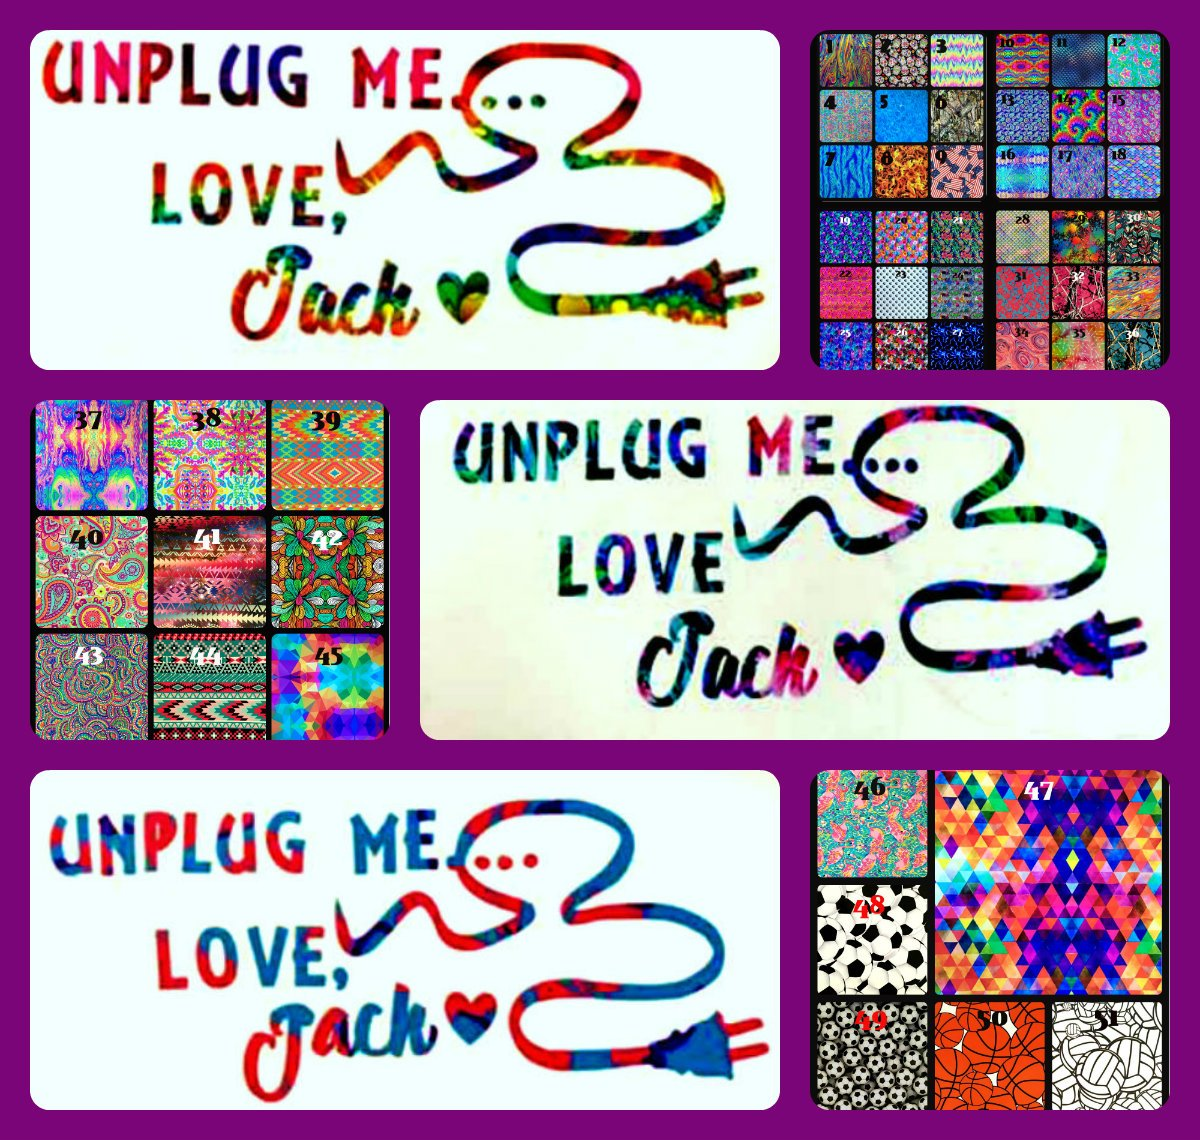 Unplug Me Crock Pot Vinyl Decal - Instapot Sticker - Instant Pot - This is Us Sticker - Unplug Me Love Jack - Crockpot Decal - Choose Color